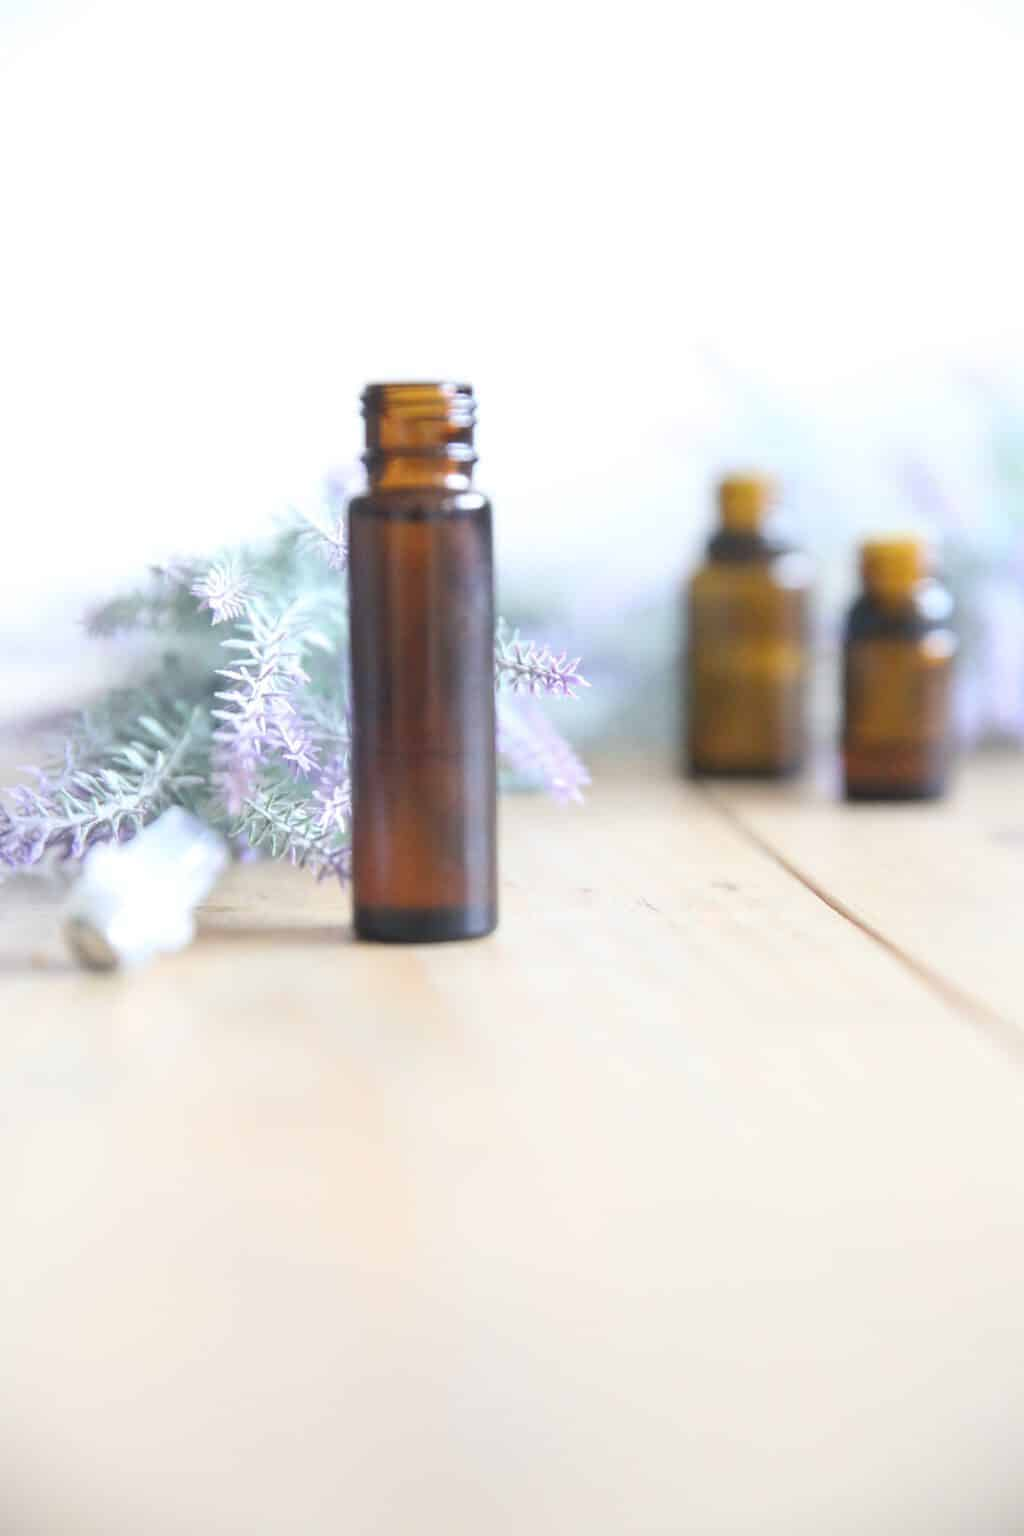 Use a lavender essential oil roller bottle for healthy sleep and any skin imperfections.